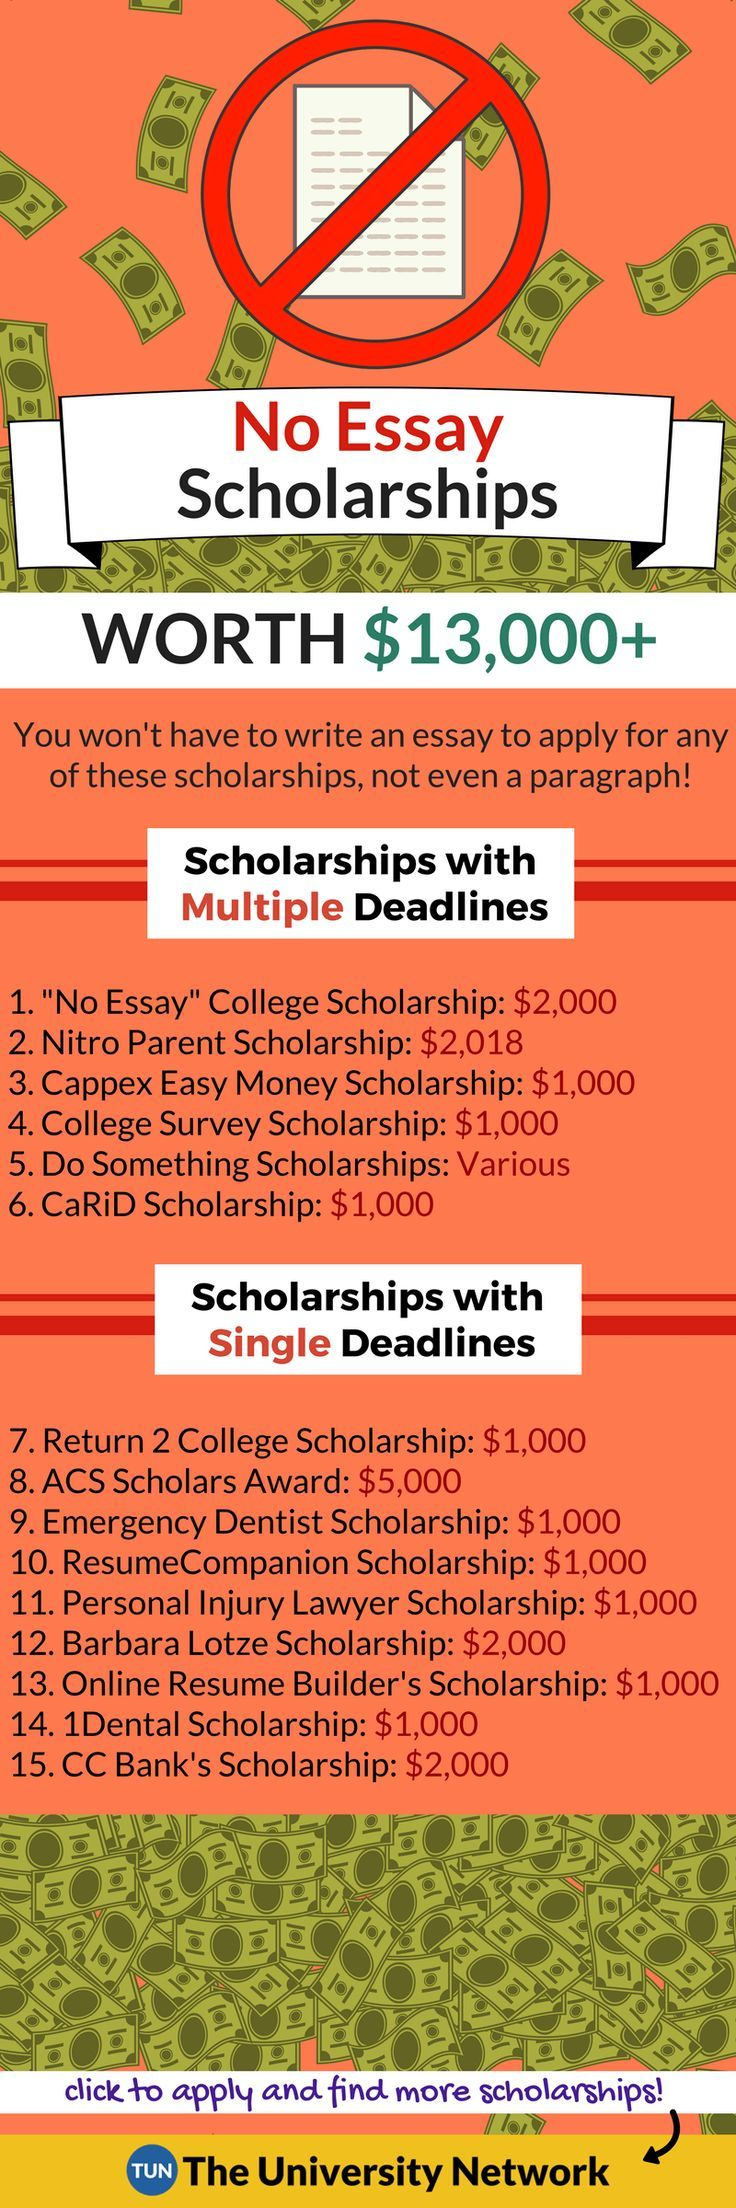 013 Essay Example No Exceptional Scholarships For Undergraduates College Students 2019 Full